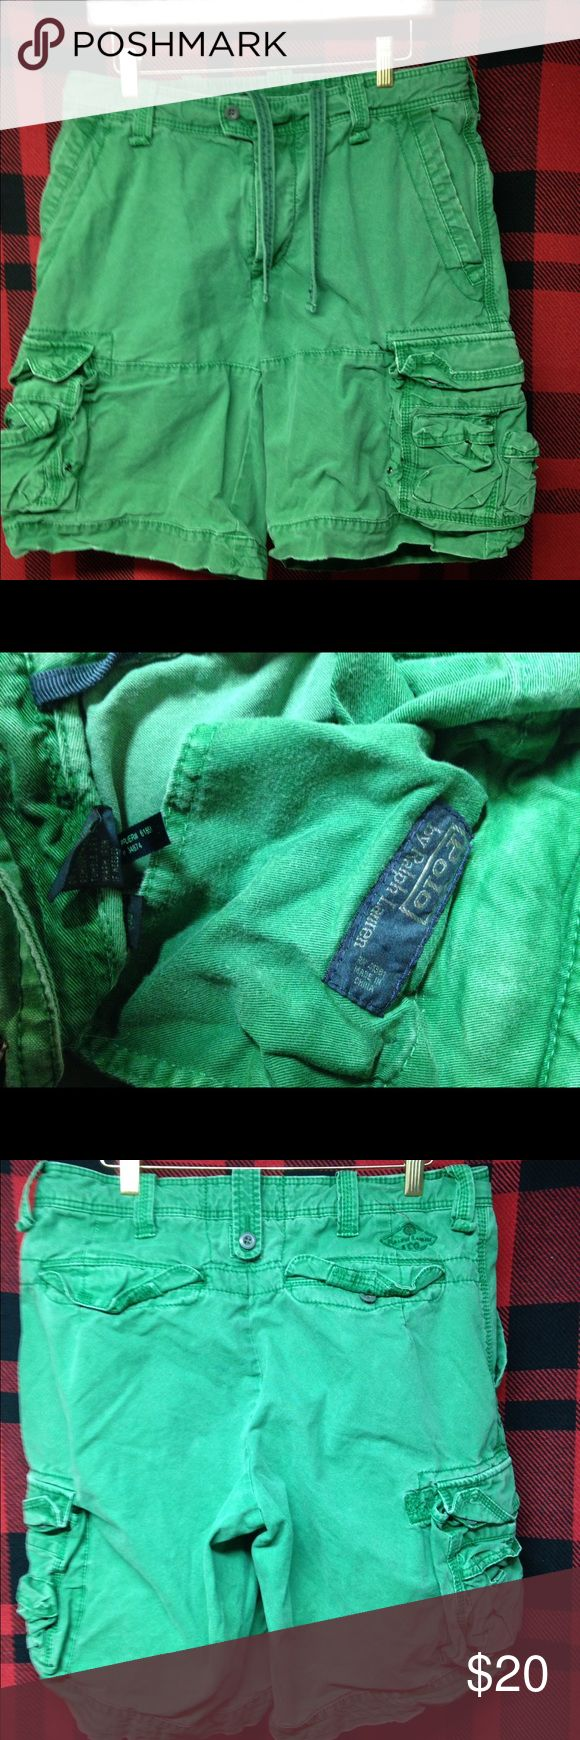 Ralph Lauren polo sz 33 green cargo shorts Nice used condition Ralph Lauren polo green military cargo shorts sz 33 these are real nice sun faded and frayed ones hard to find 20 obo Polo by Ralph Lauren Shorts Cargo